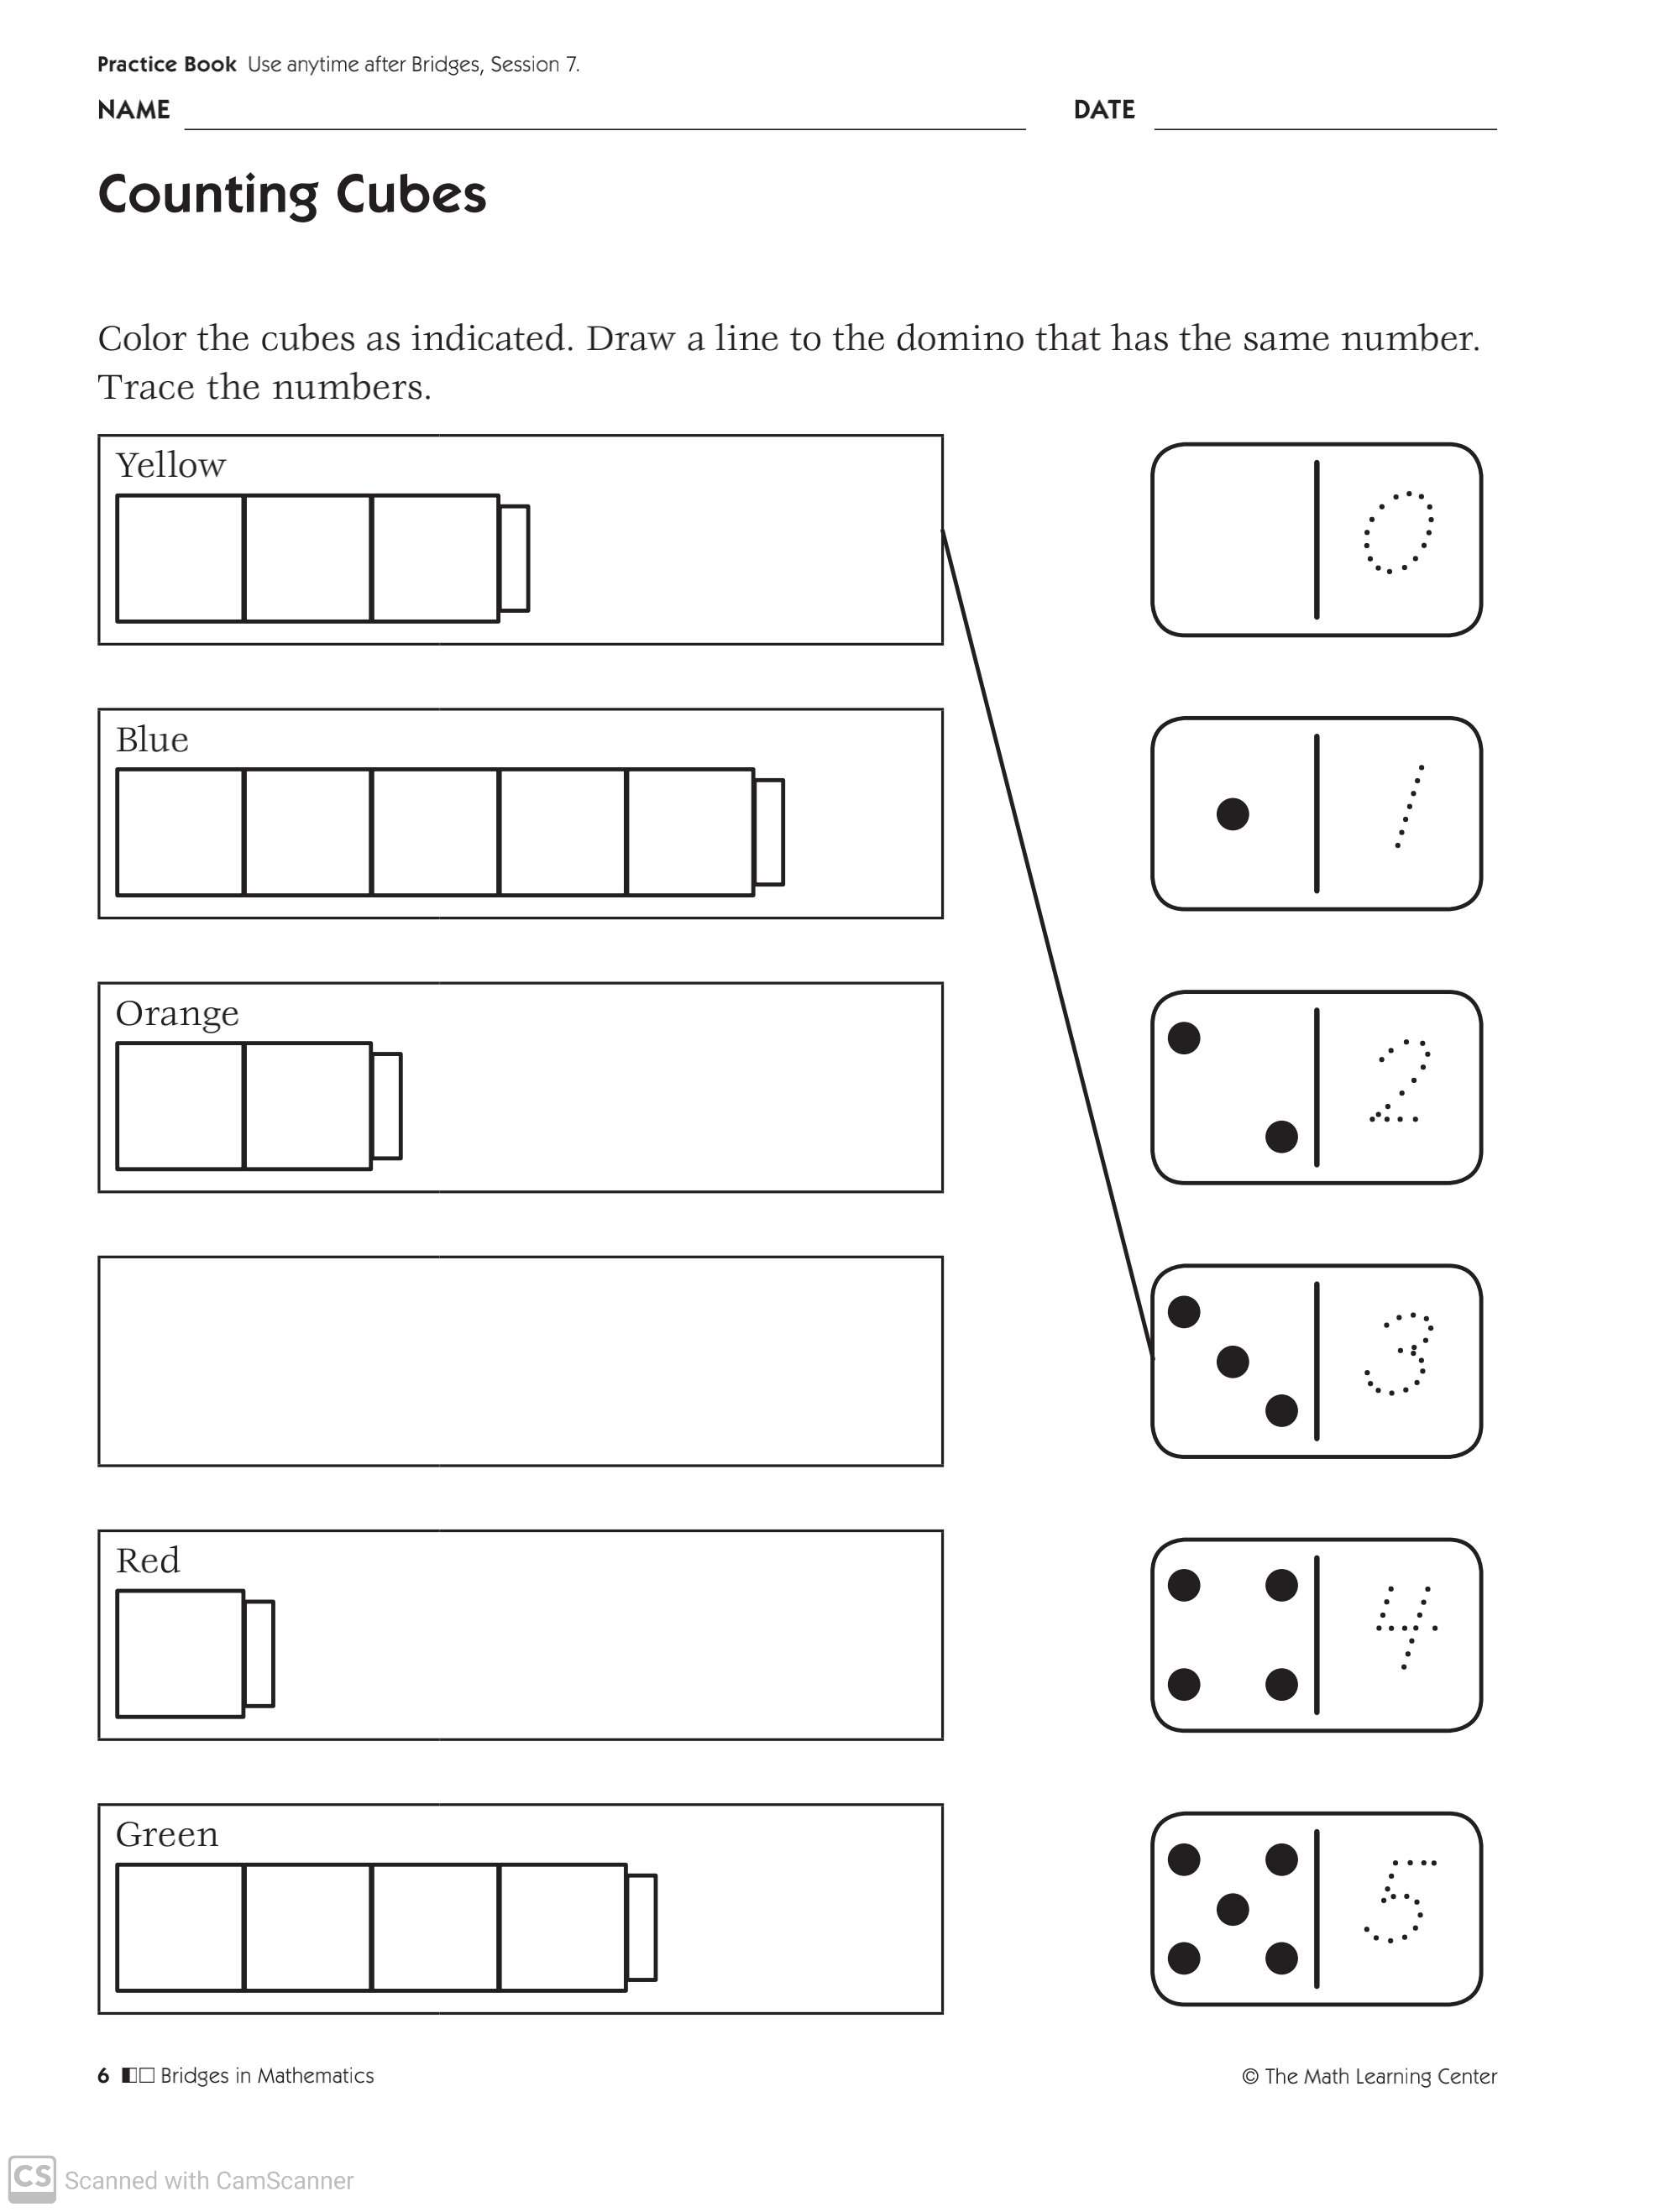 Maths Practice Worksheets For Primary Teaching Kids To